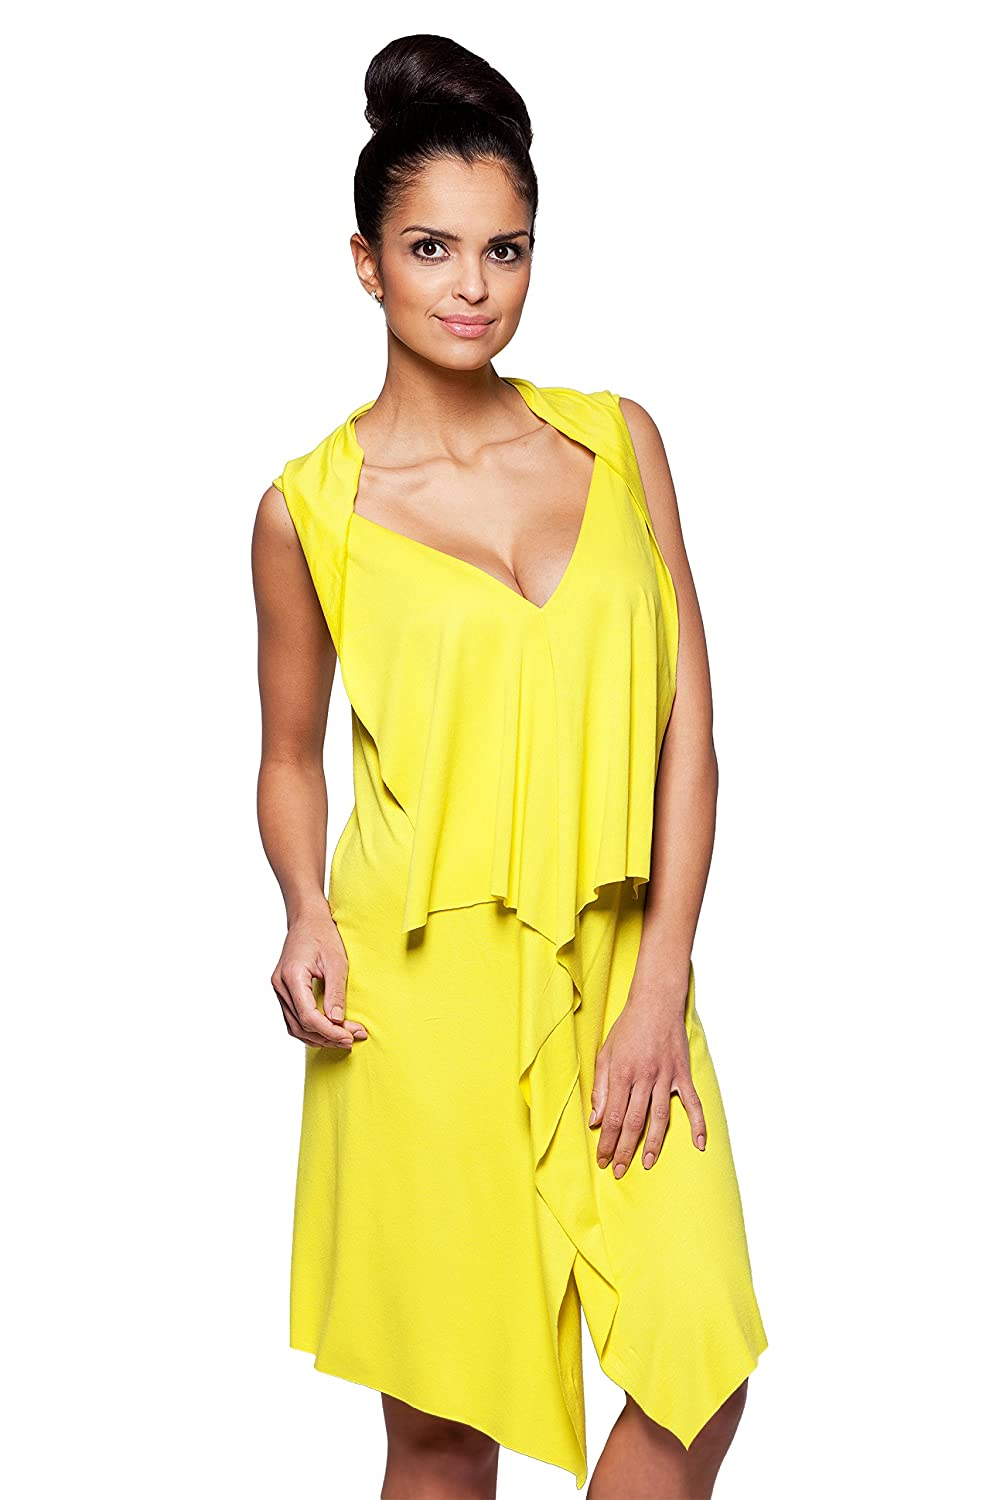 Extravagant Nightshirt Nightdress Yellow